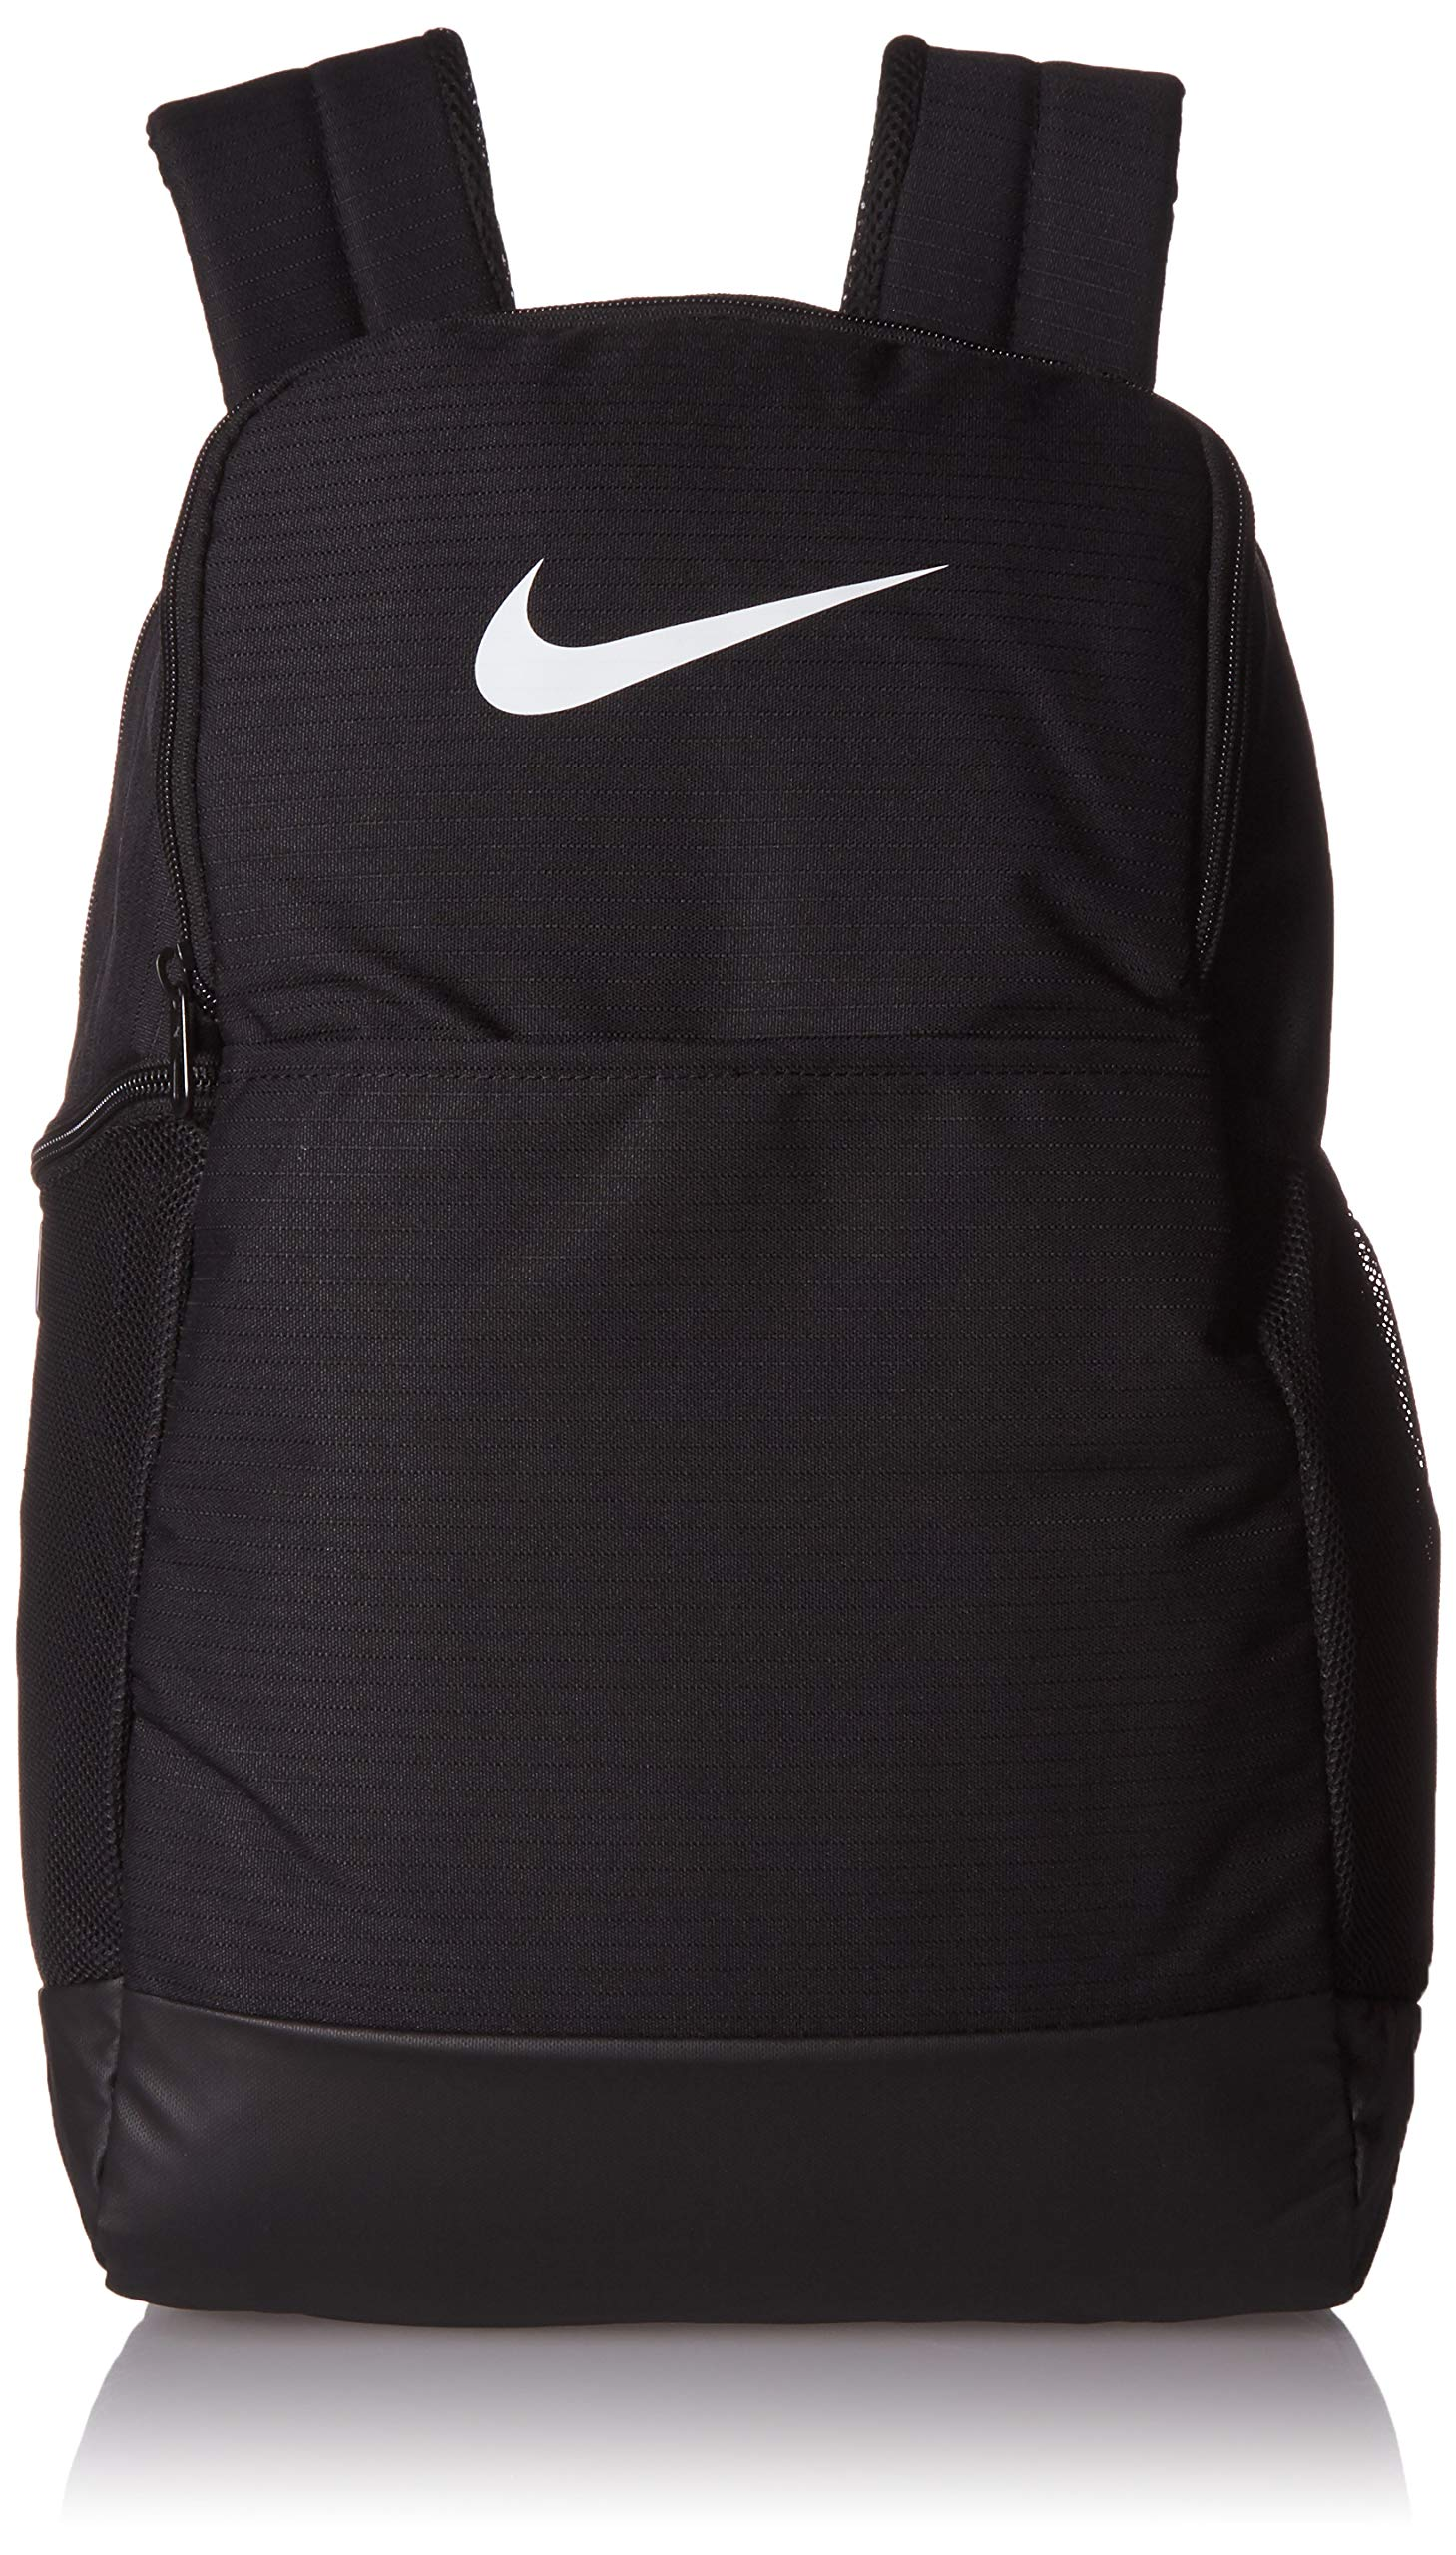 Nike Brasilia Medium Training Backpack, Nike Backpack for Women and Men with Secure Storage & Water Resistant Coating, Black/Black/White by Nike